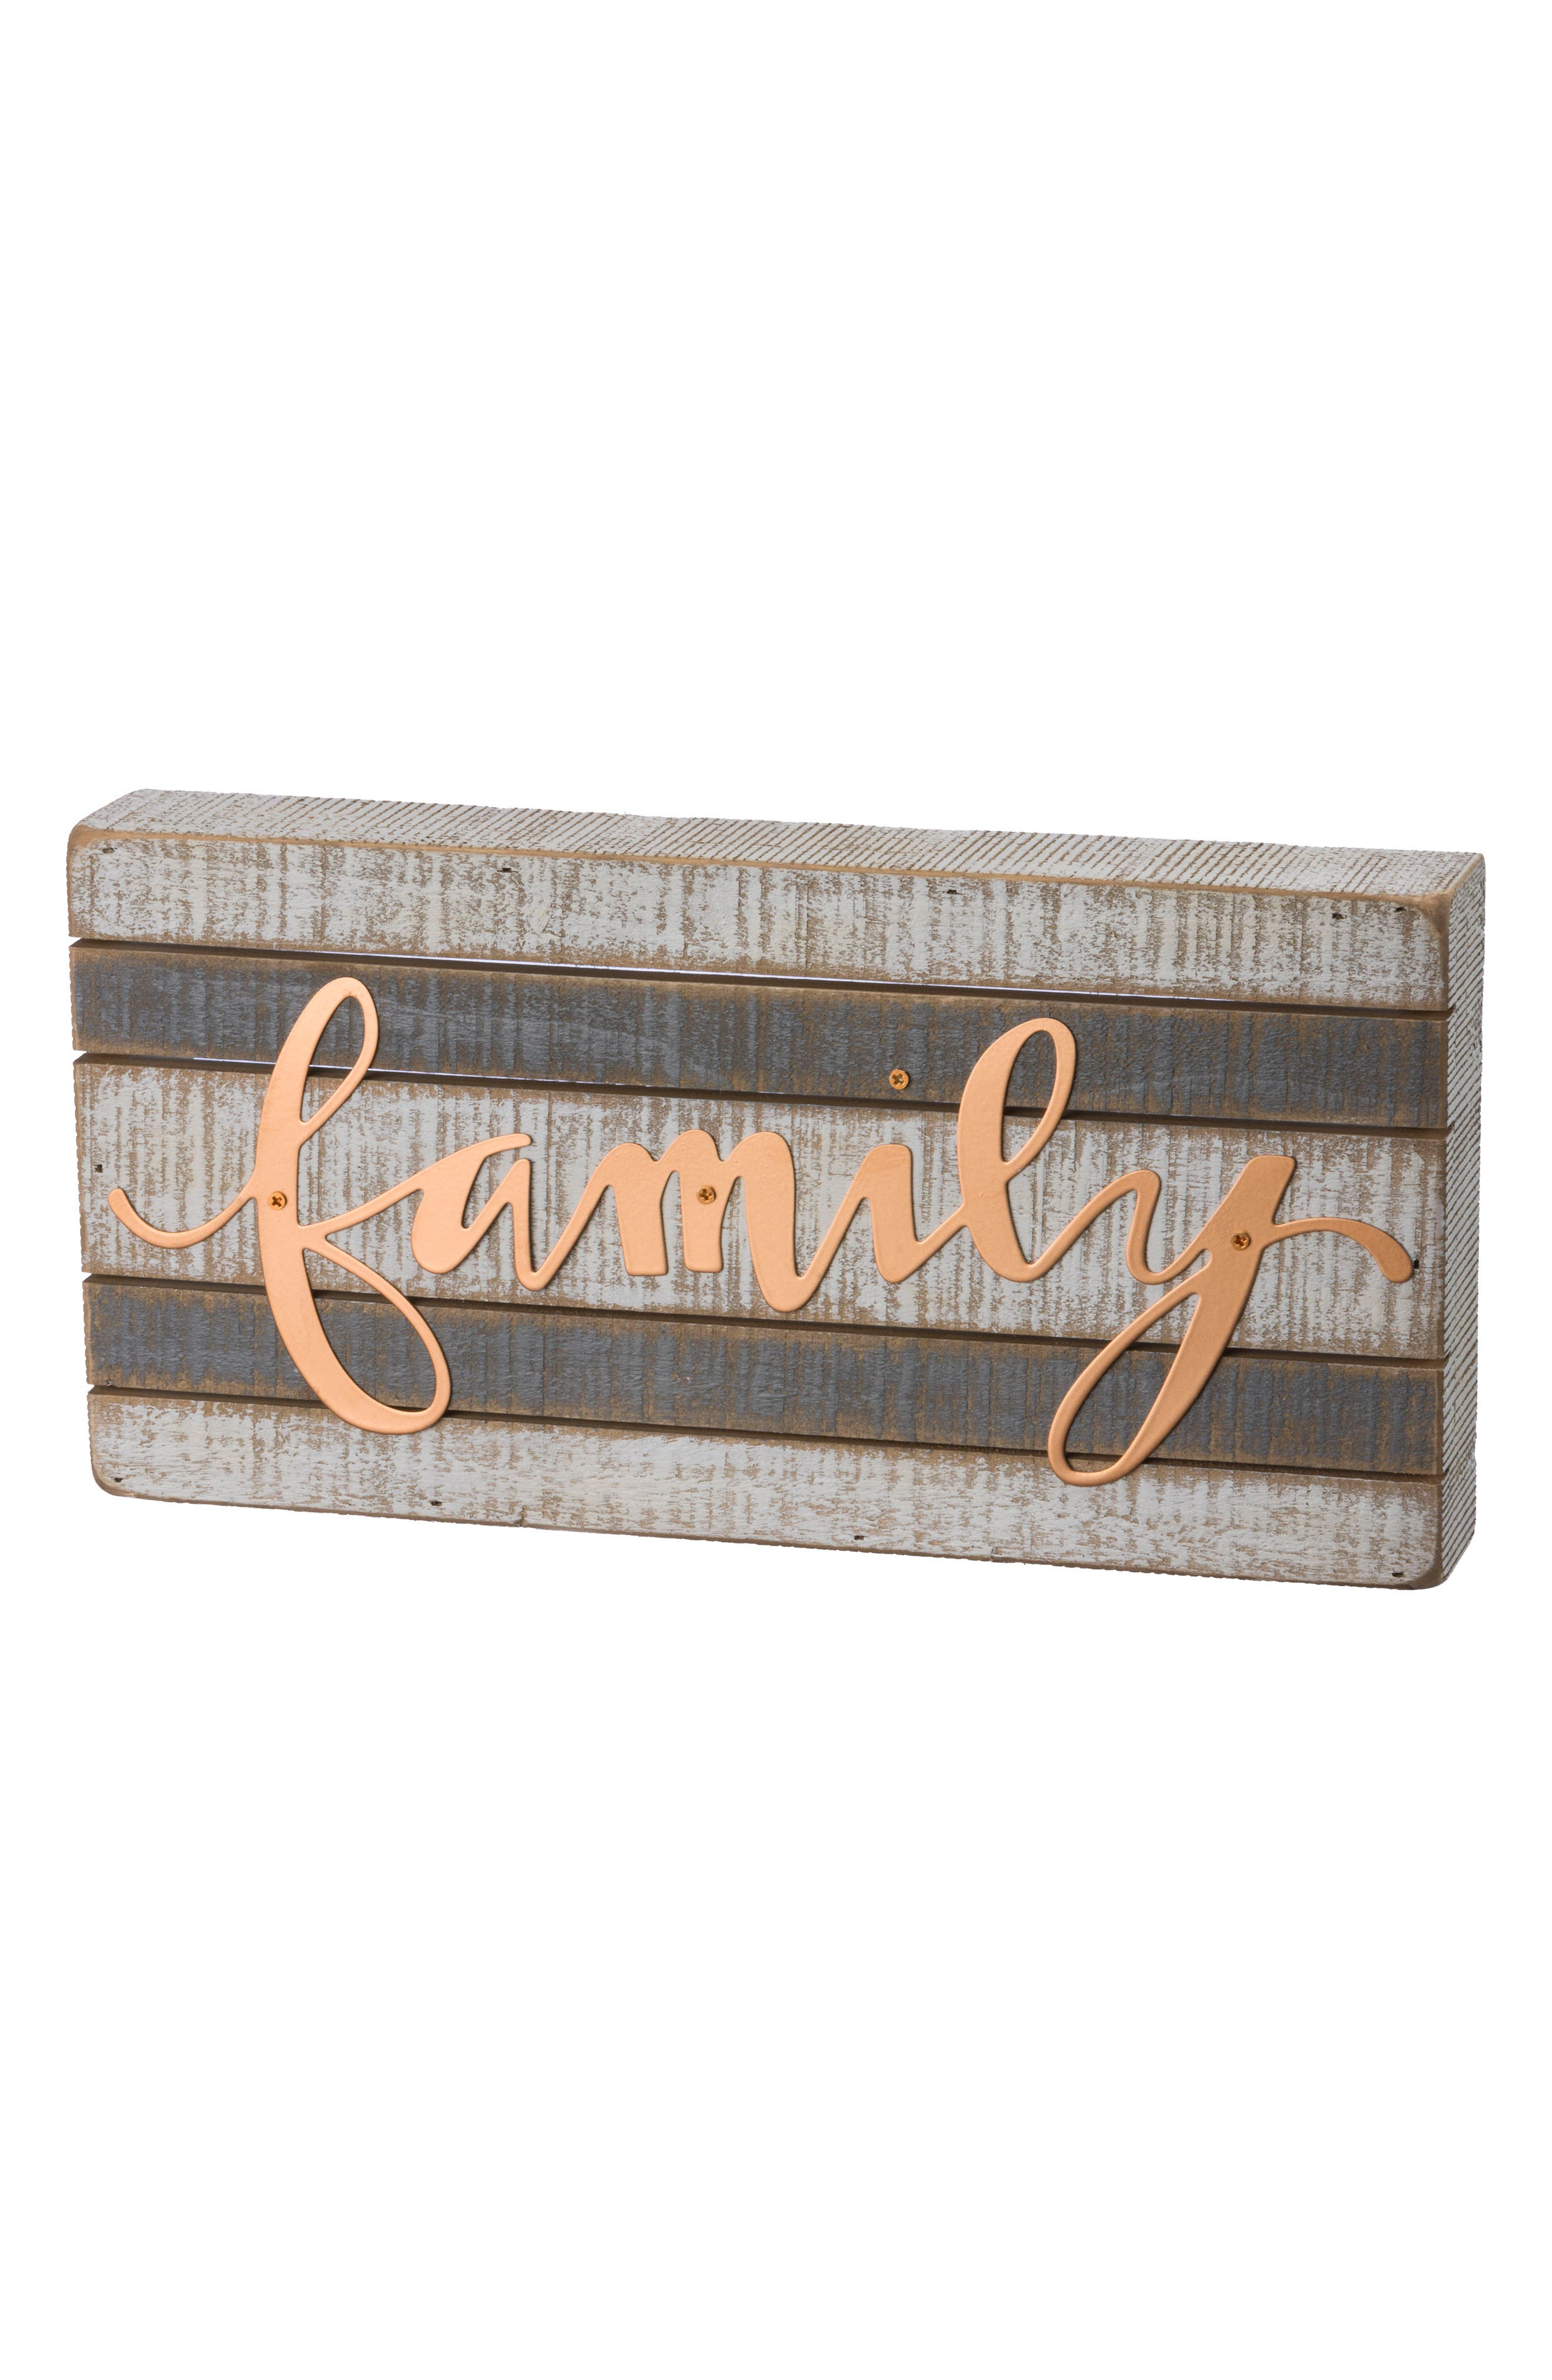 Primitives by Kathy Family Wood Box Sign